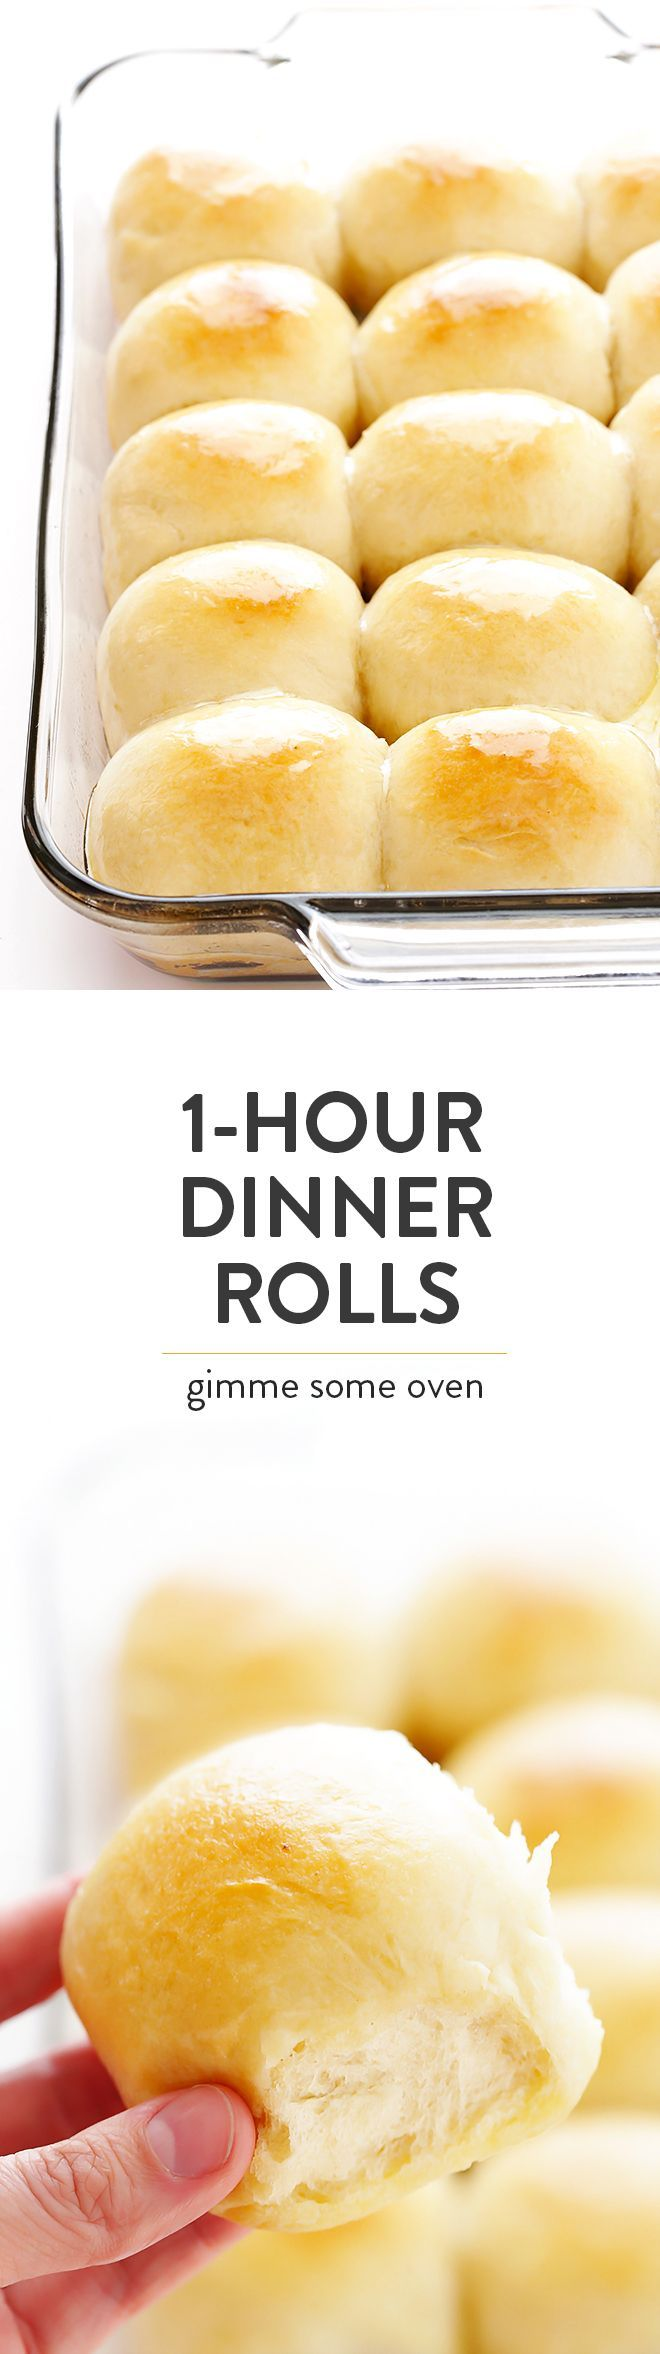 This 1-Hour Dinner Rolls recipe is the BEST! It's super-easy to make, and those soft and buttery rolls are irresistibly delicious!   http://gimmesomeoven.com